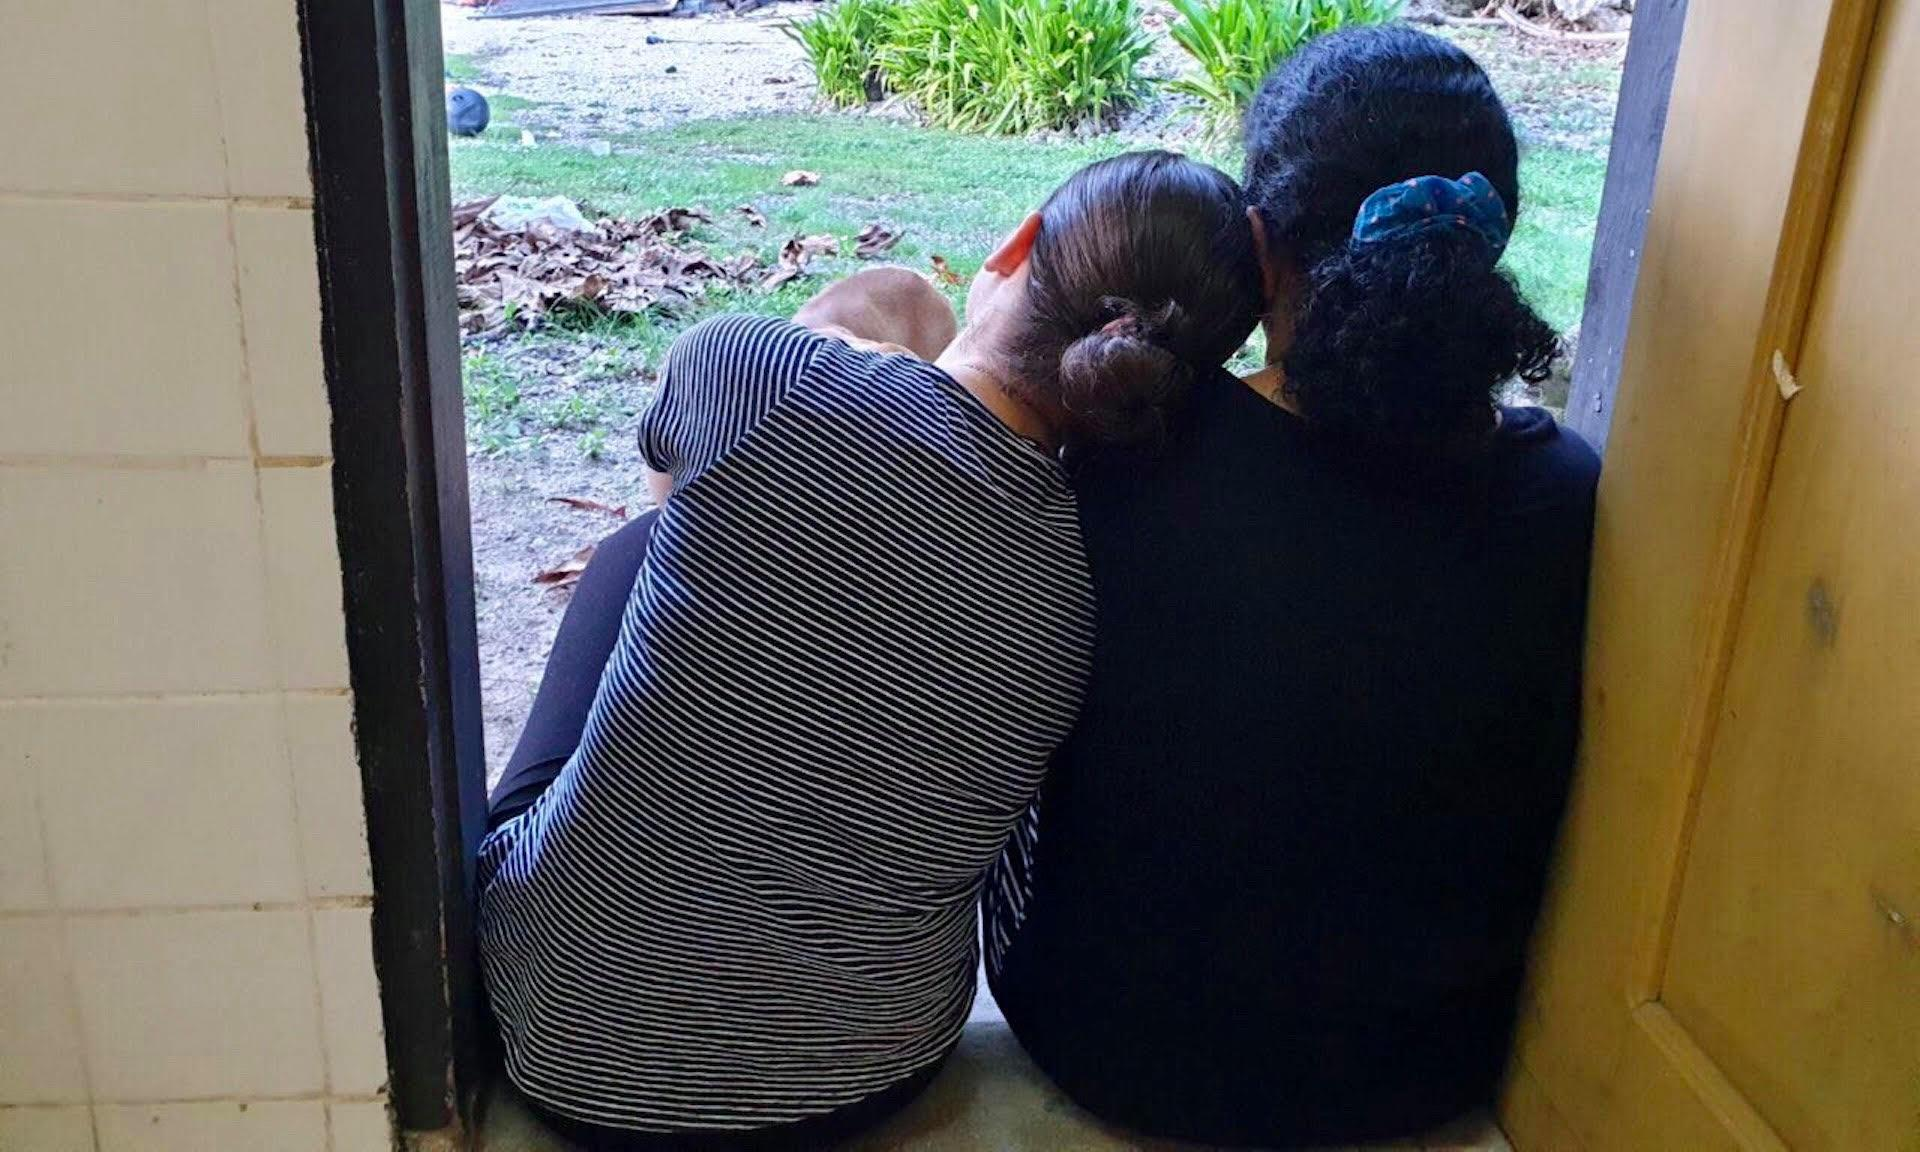 'Australia is a bigger cage': the ongoing trauma of Nauru's child refugees